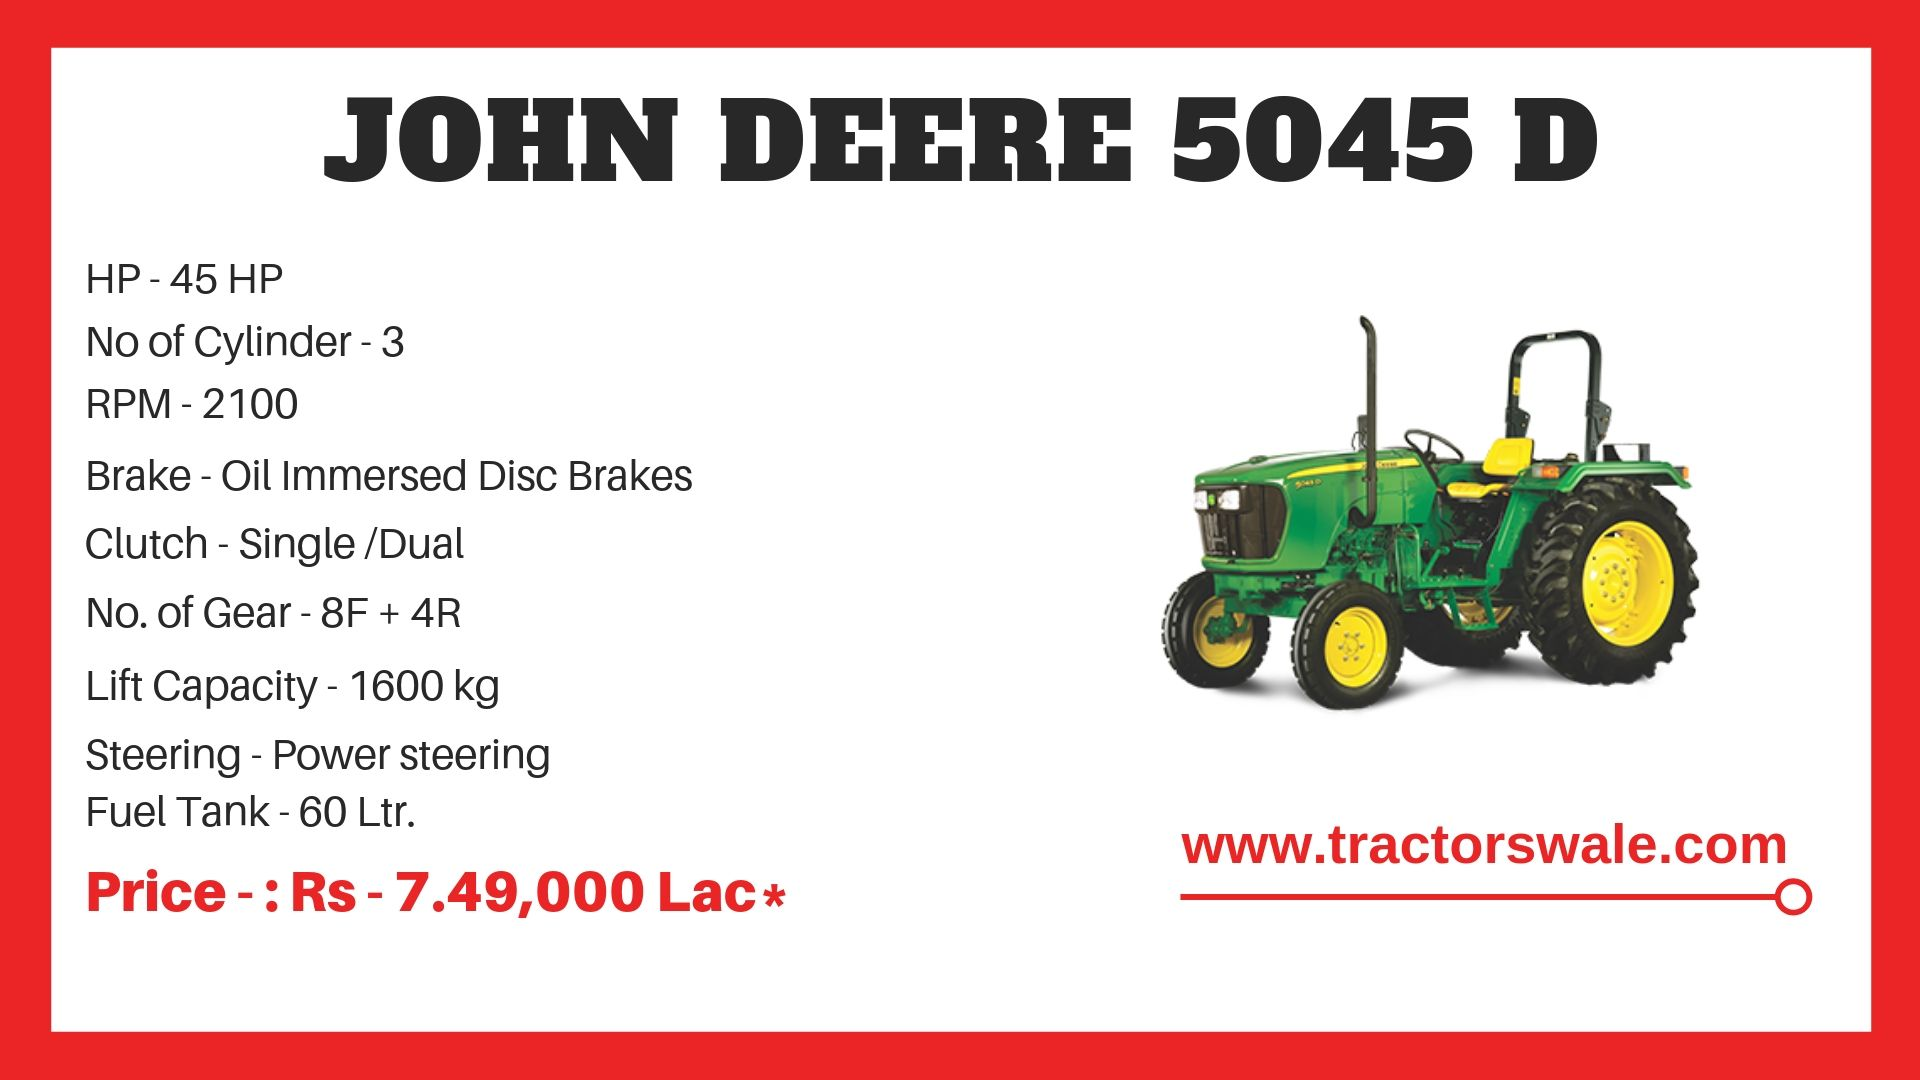 John Deere 5045 D Tractor Specifications